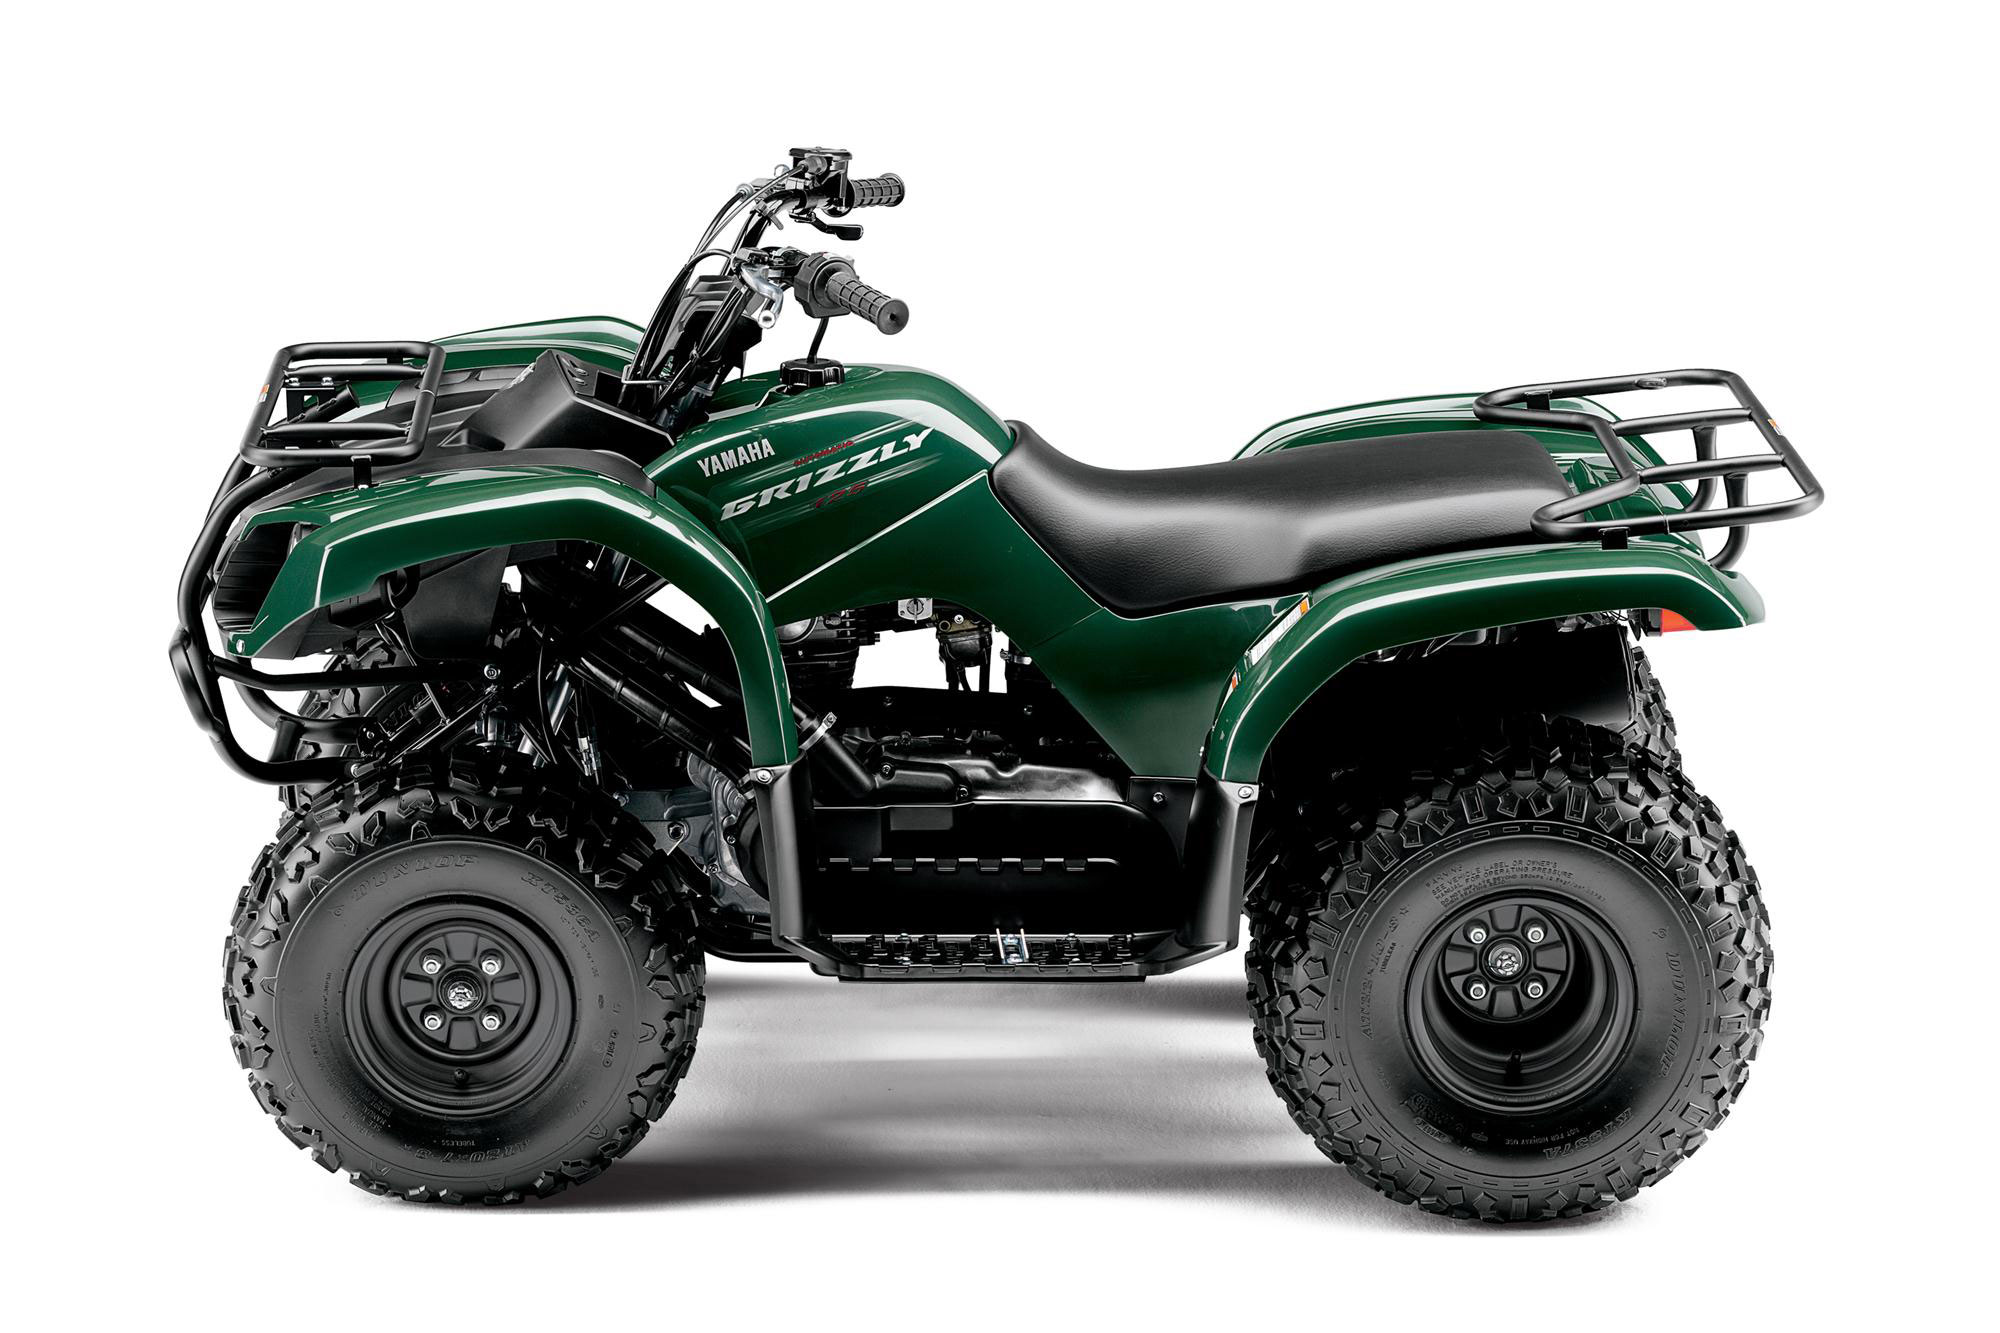 2013 yamaha grizzly 125 automatic review. Black Bedroom Furniture Sets. Home Design Ideas